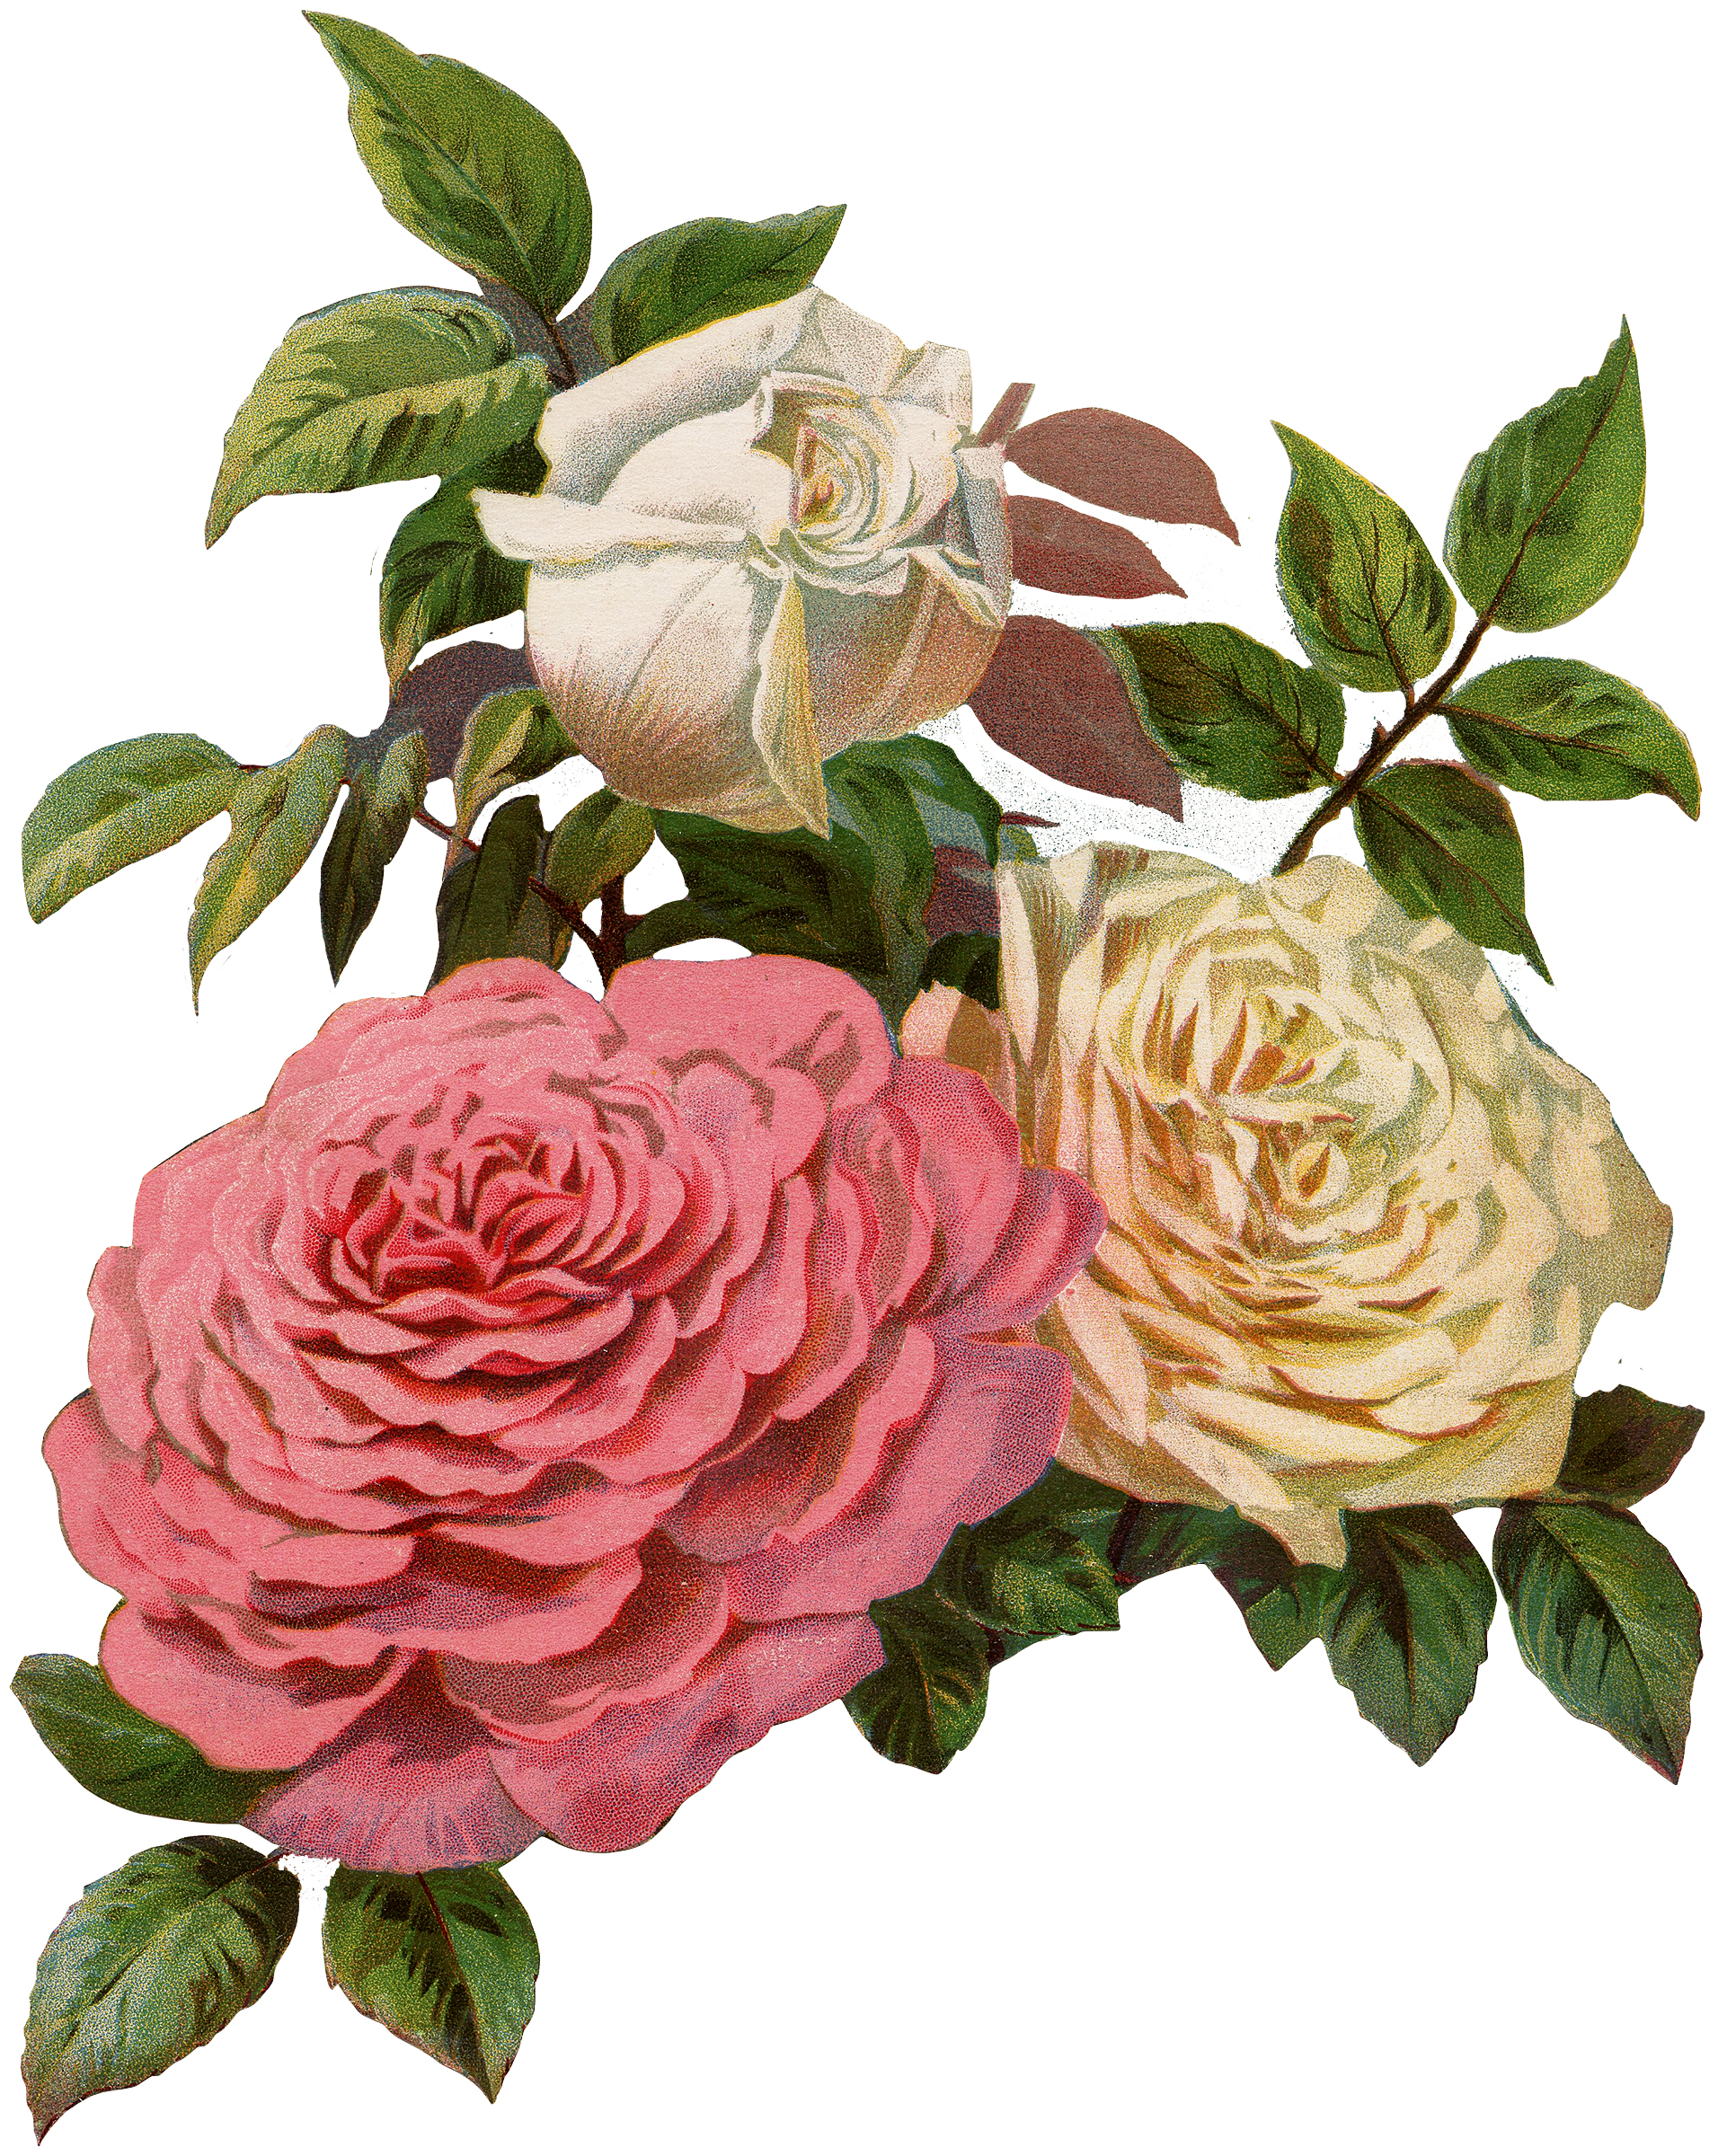 Lovely Victorian Cream and Pink Roses Print! - The Graphics Fairy